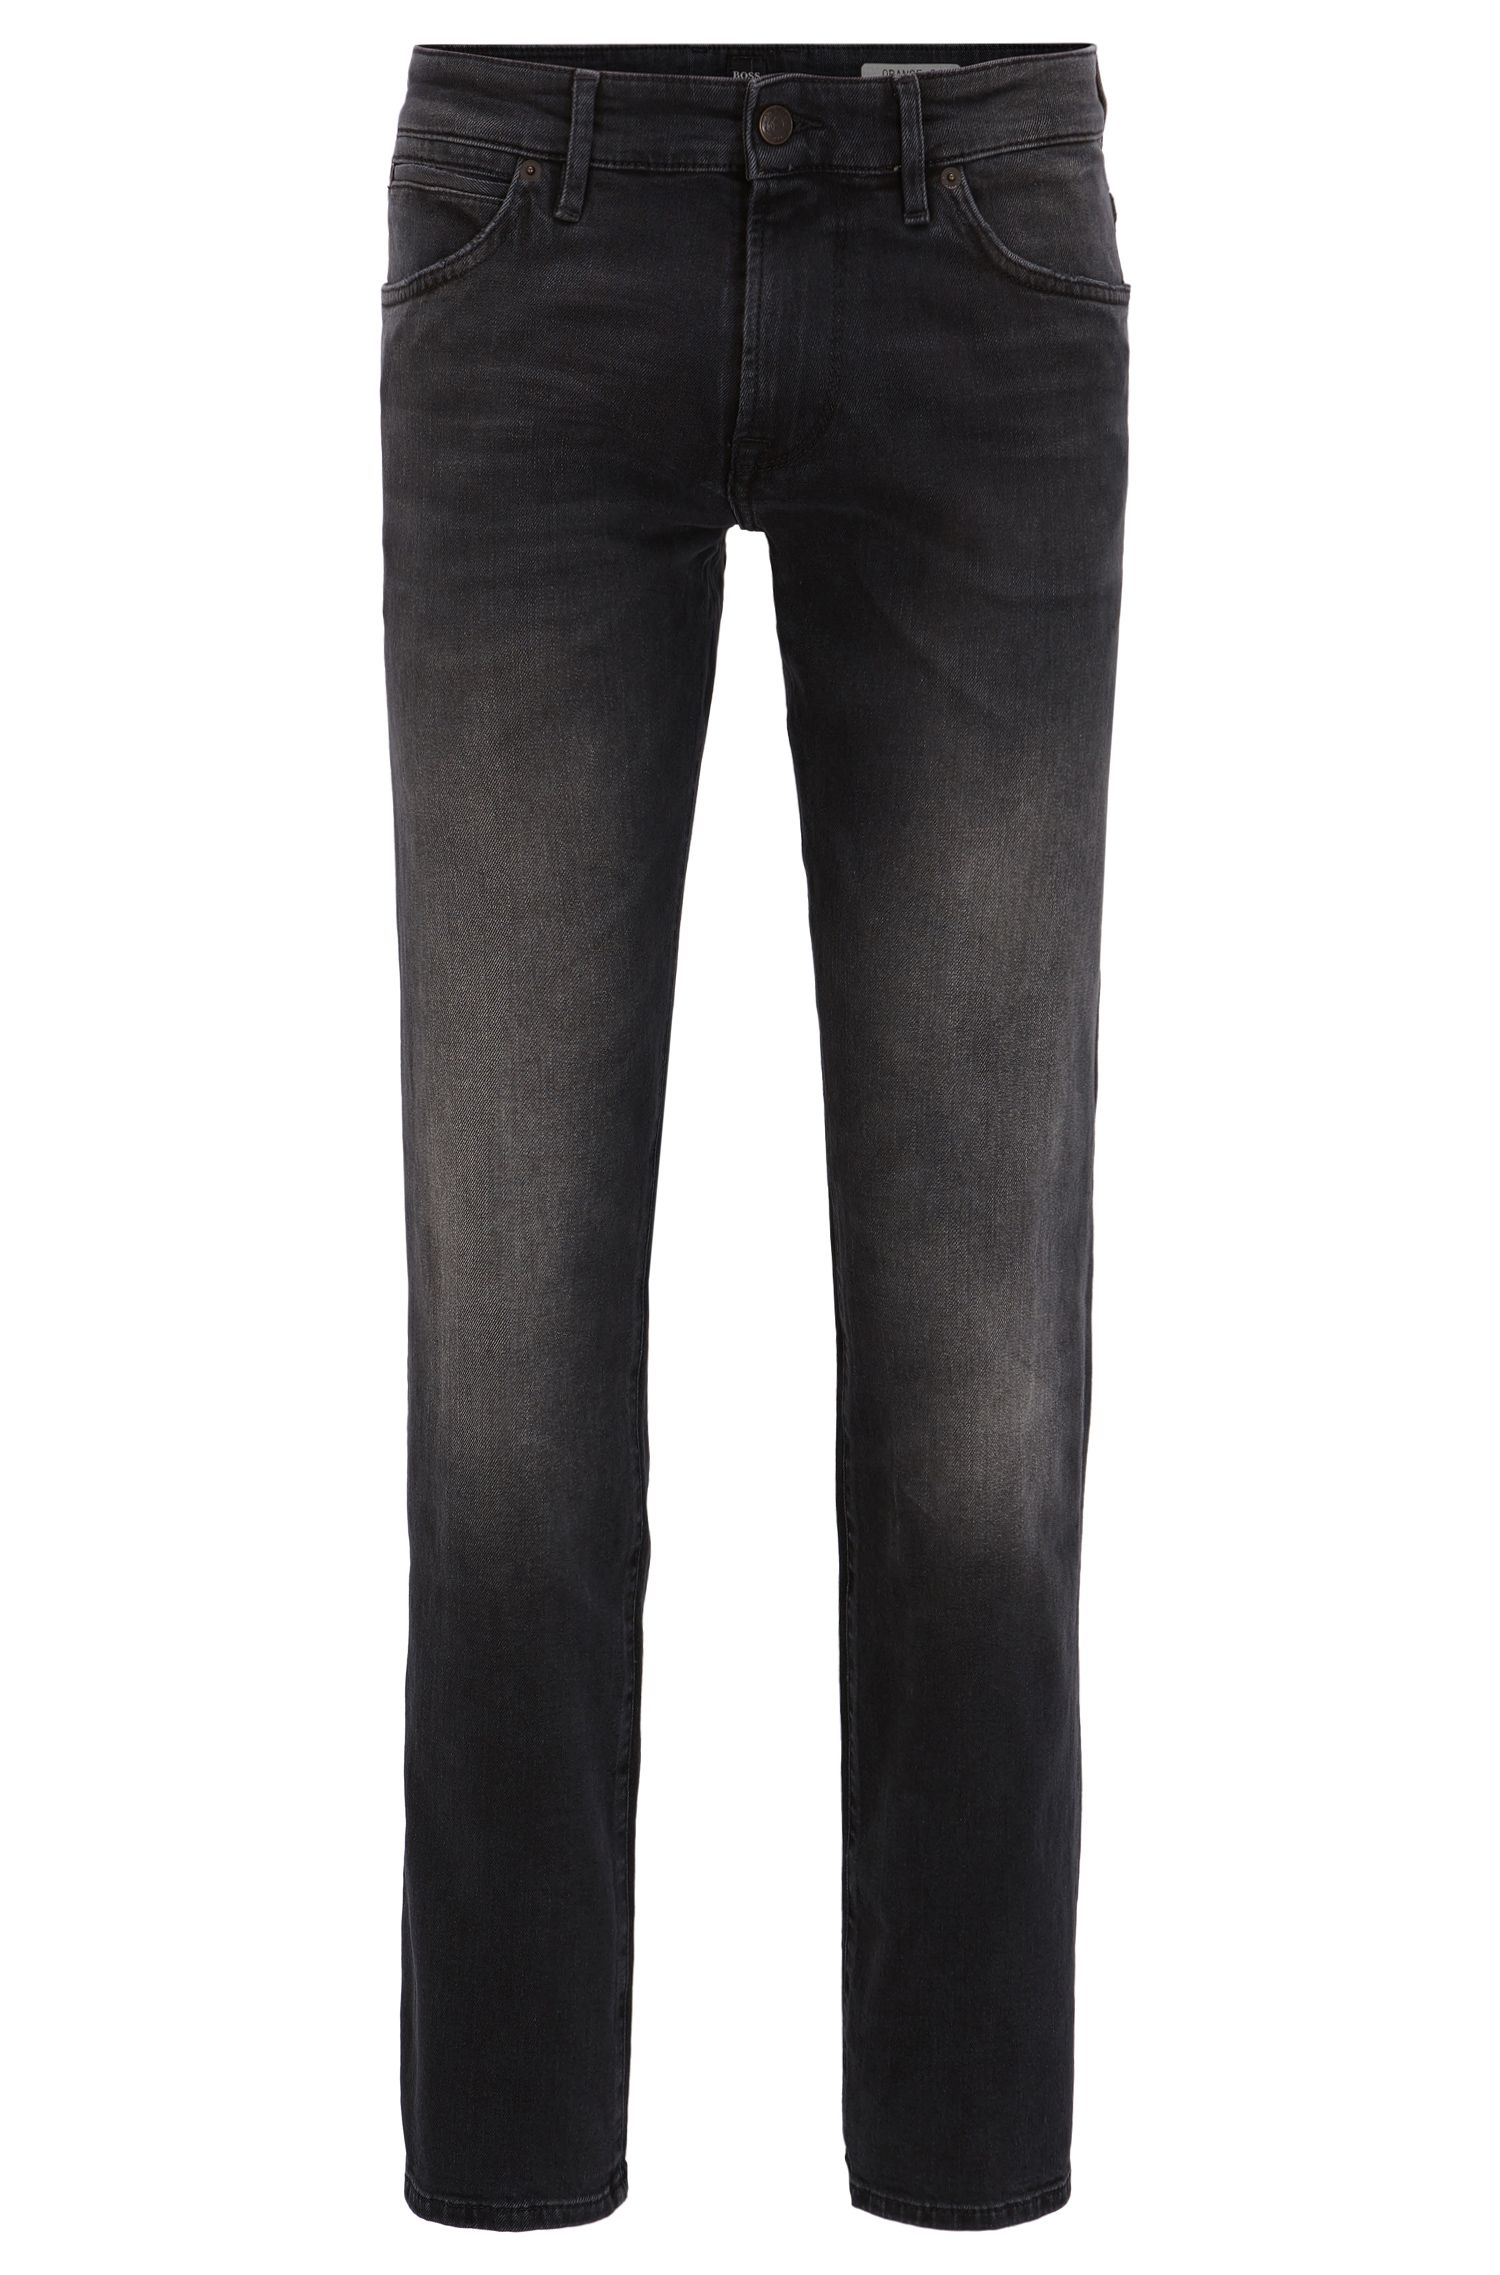 Regular-fit jeans in black comfort-stretch denim